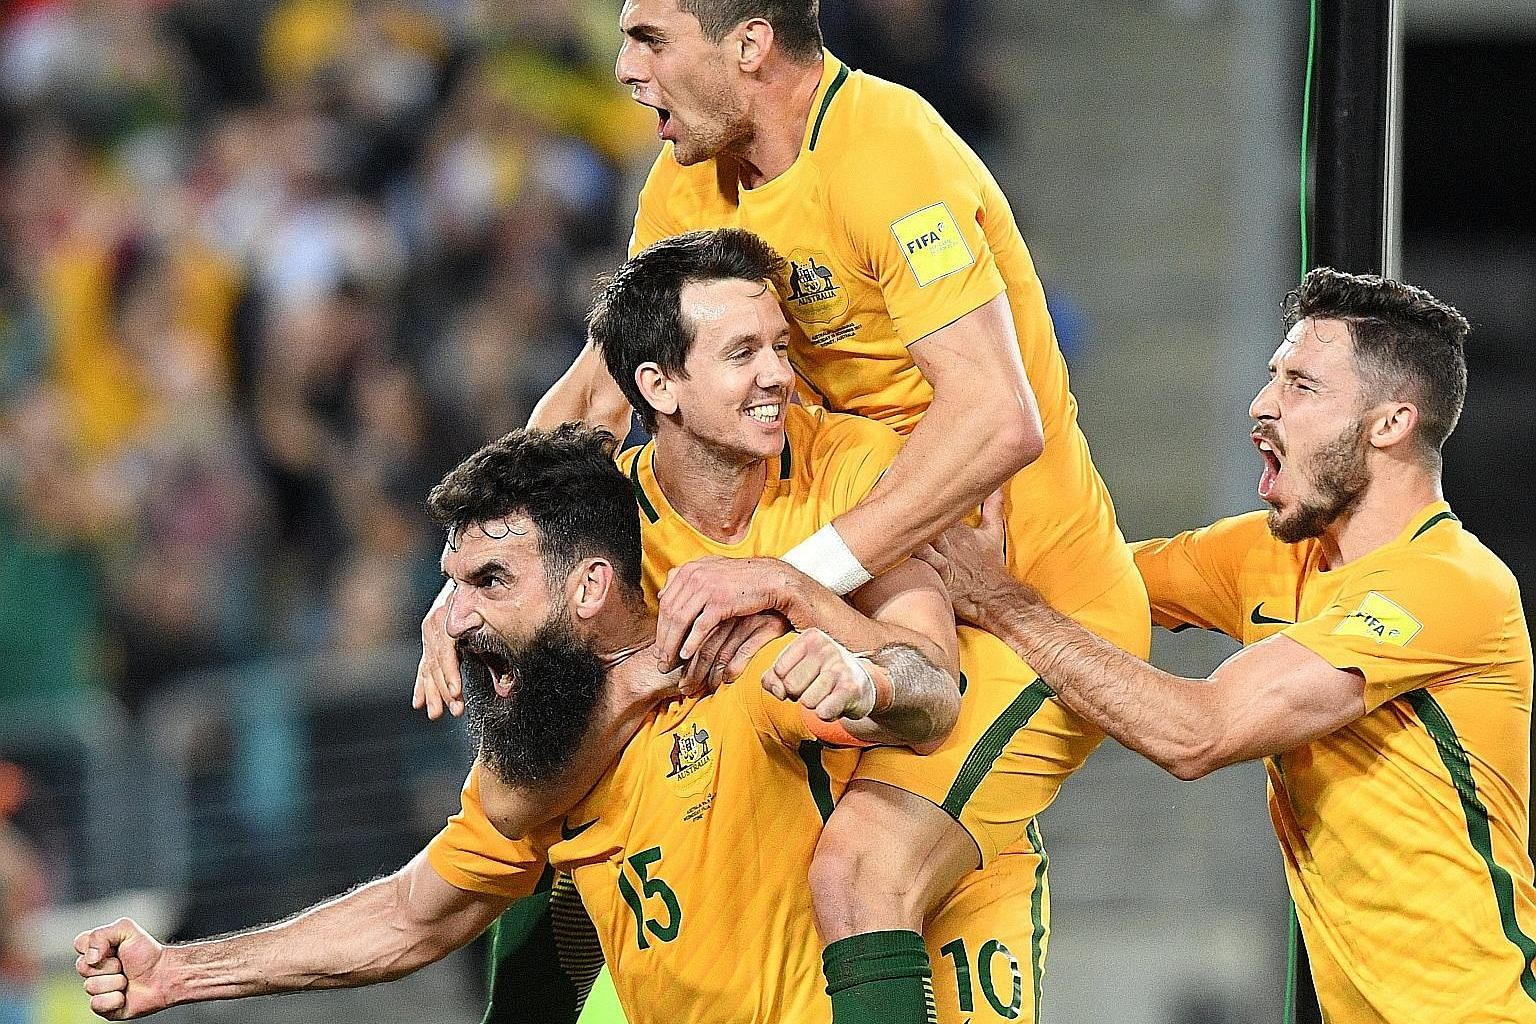 Australia skipper Mile Jedinak (bearded) carrying team-mates Robbie Kruse and Tomi Juric, and his country's World Cup hopes after scoring against Honduras.